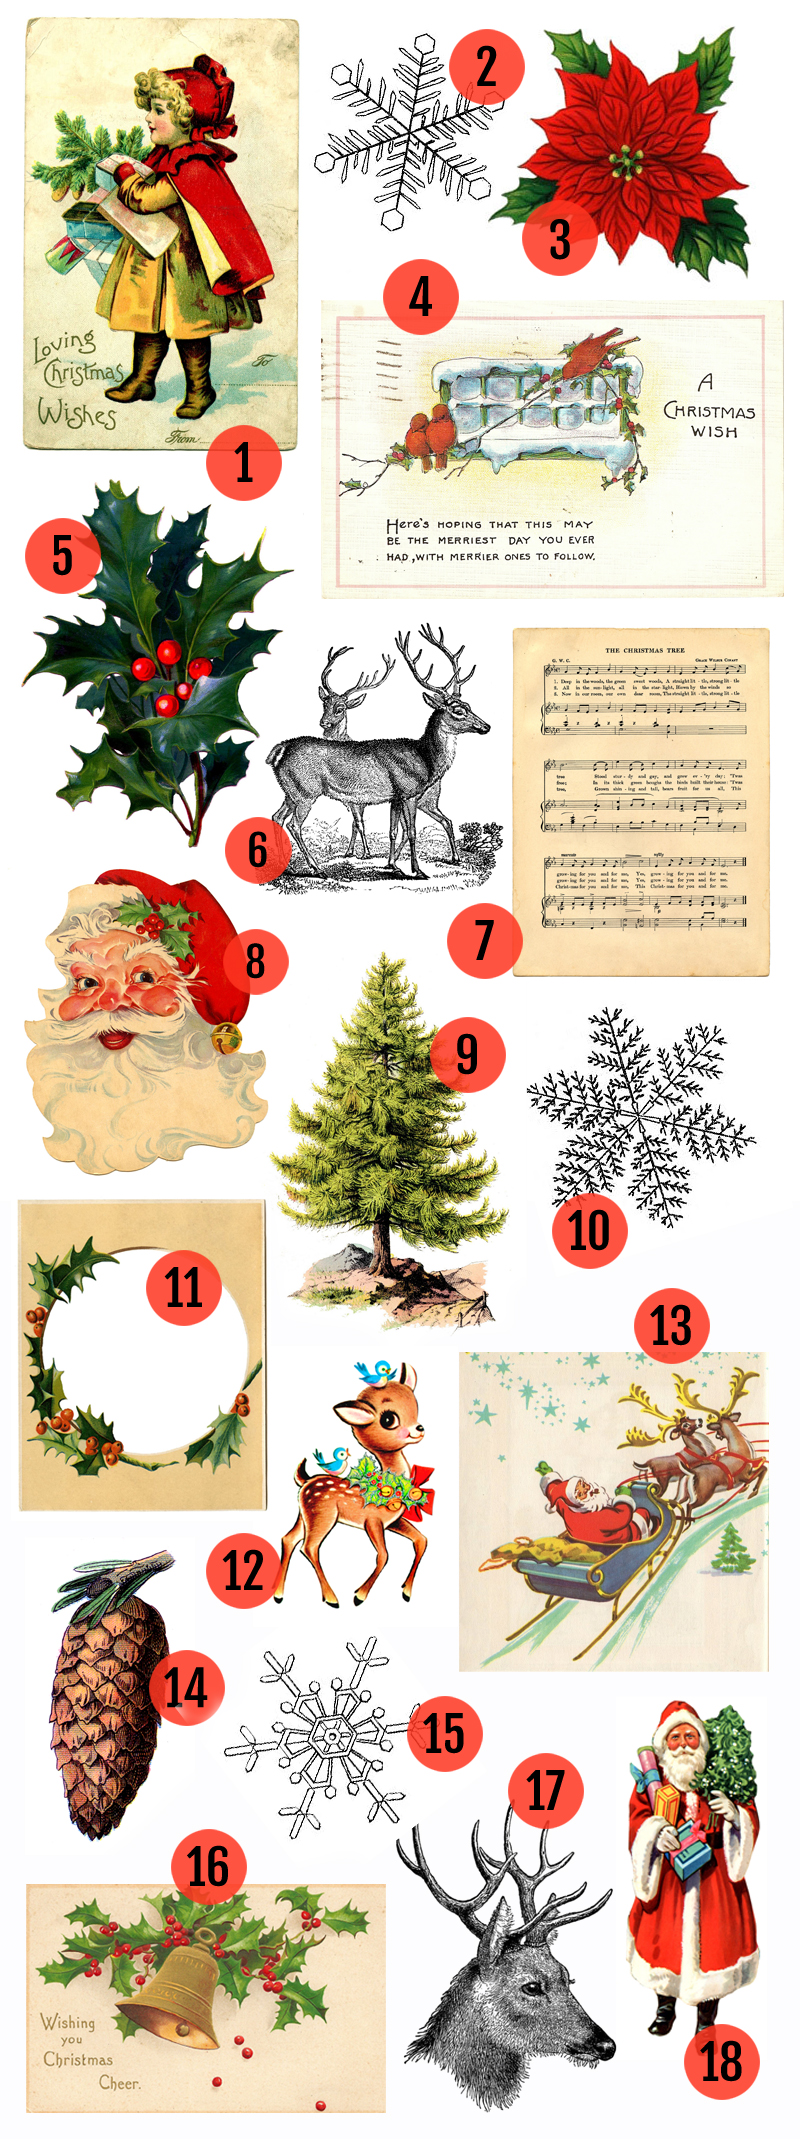 It's just a picture of Intrepid Free Printable Christmas Images